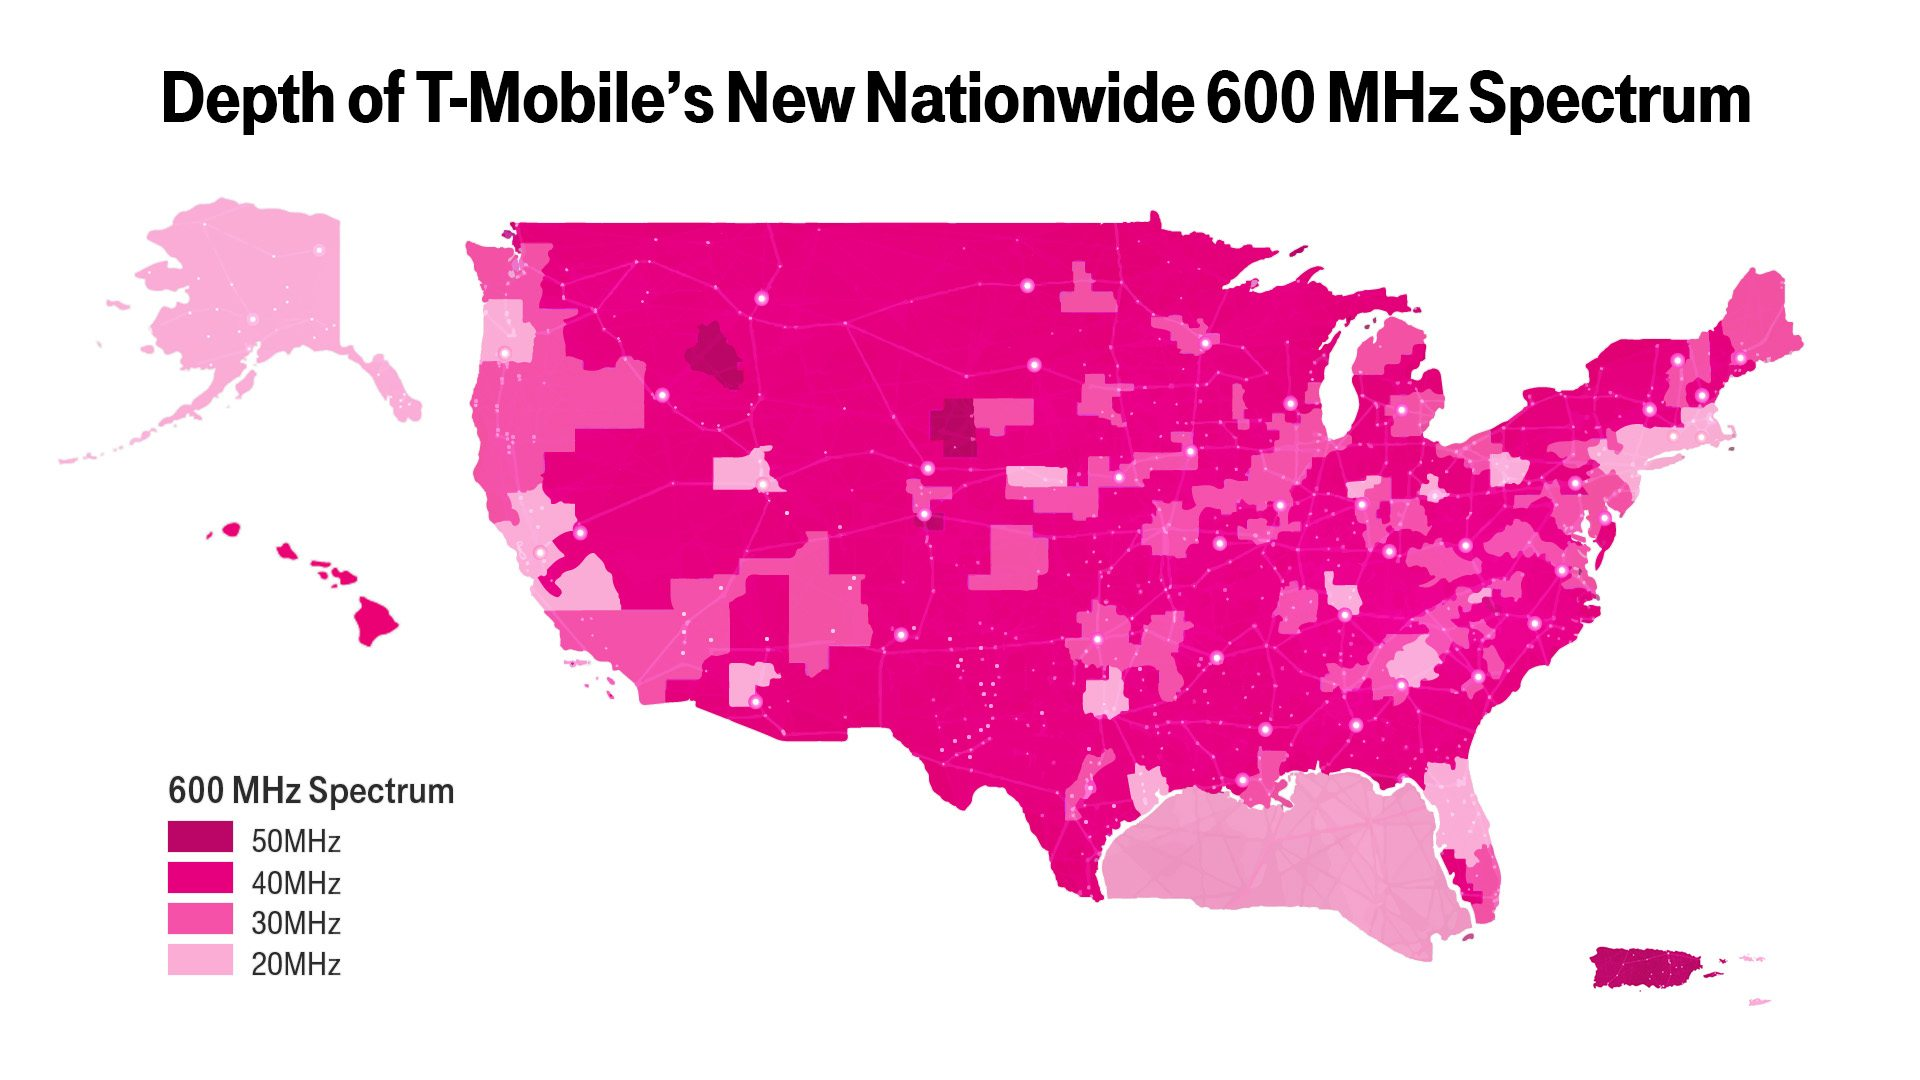 Prepping for 5G, T-Mobile US completes vEPC build